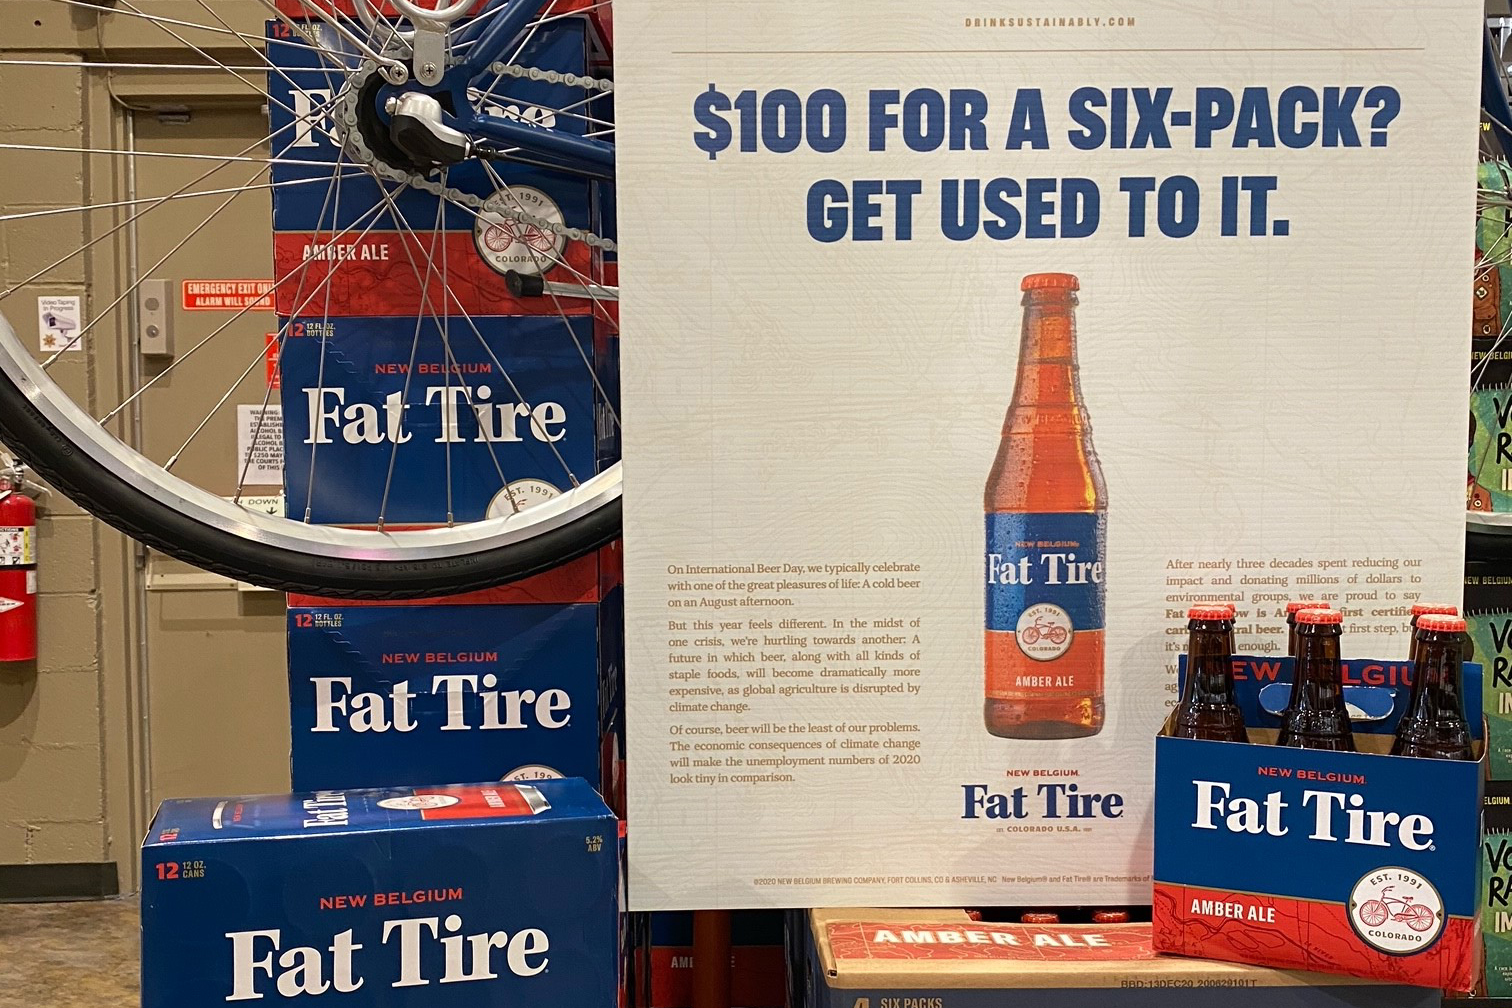 The one-day increase is part of an International Beer Day campaign that puts a sobering spin on the normally frivolous fake holiday